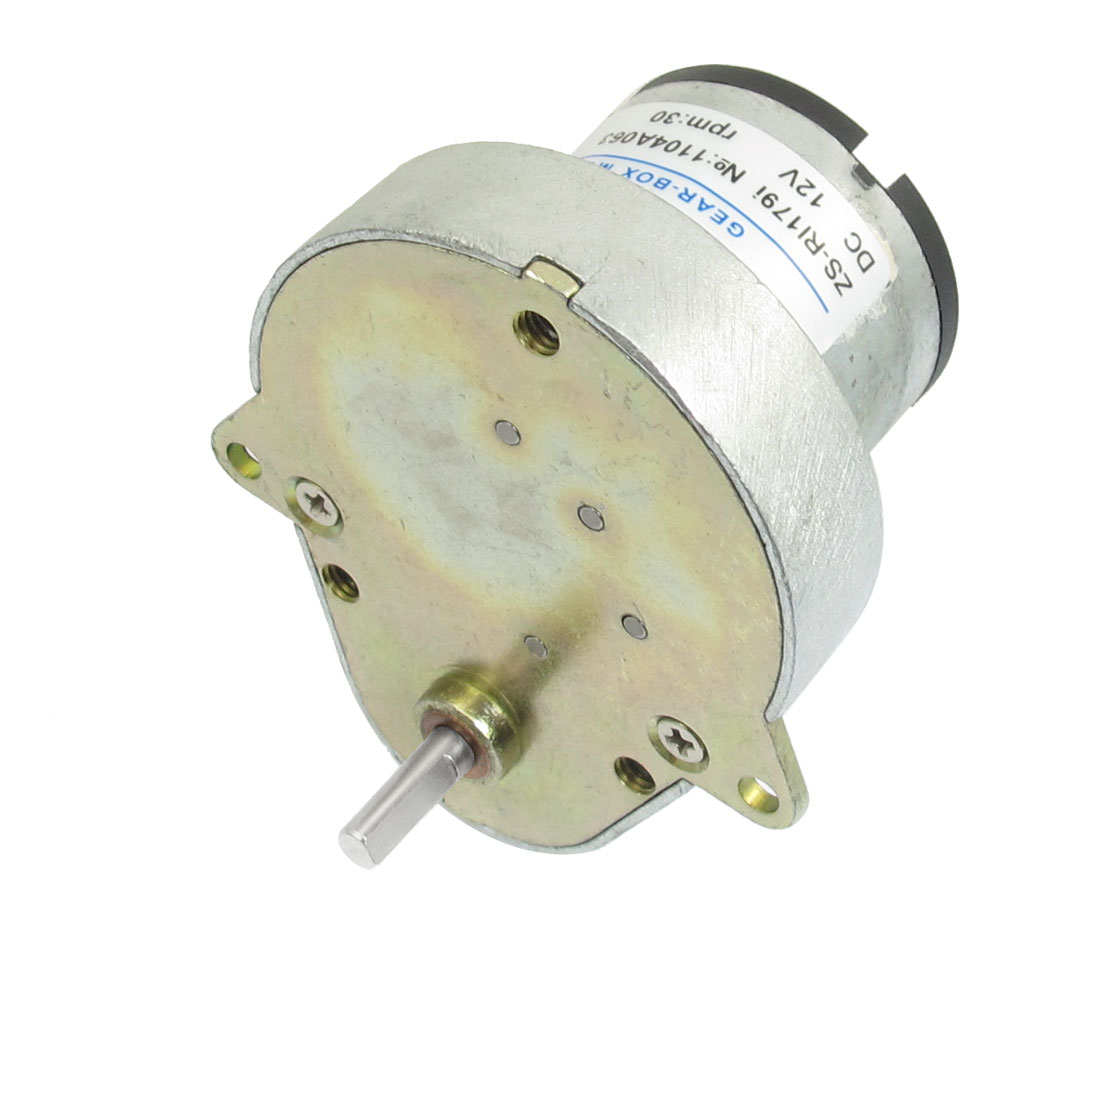 DC 12V 30RPM 4mm Shaft Diameter Power Gear Box Motor ZS-RI